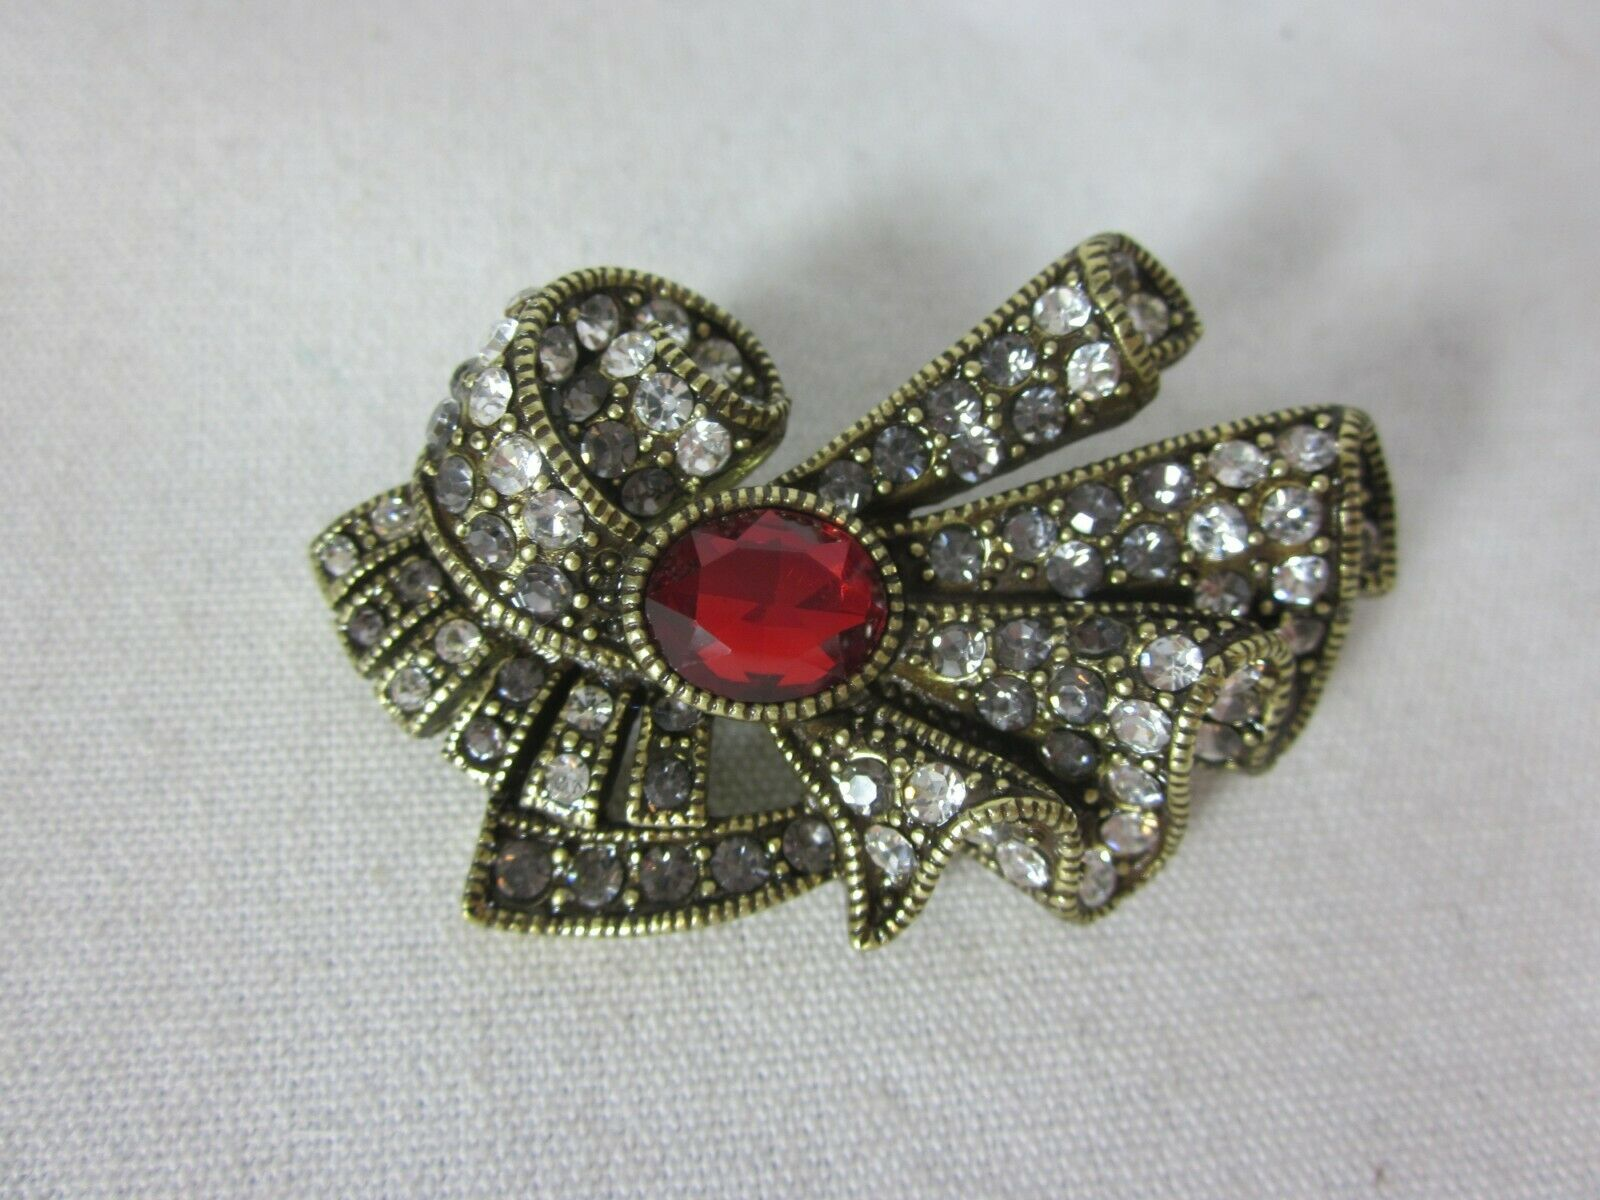 Primary image for Heidi Daus Collector's Edition Swarovski Crystal Art Deco Ribbon Pin Brooch